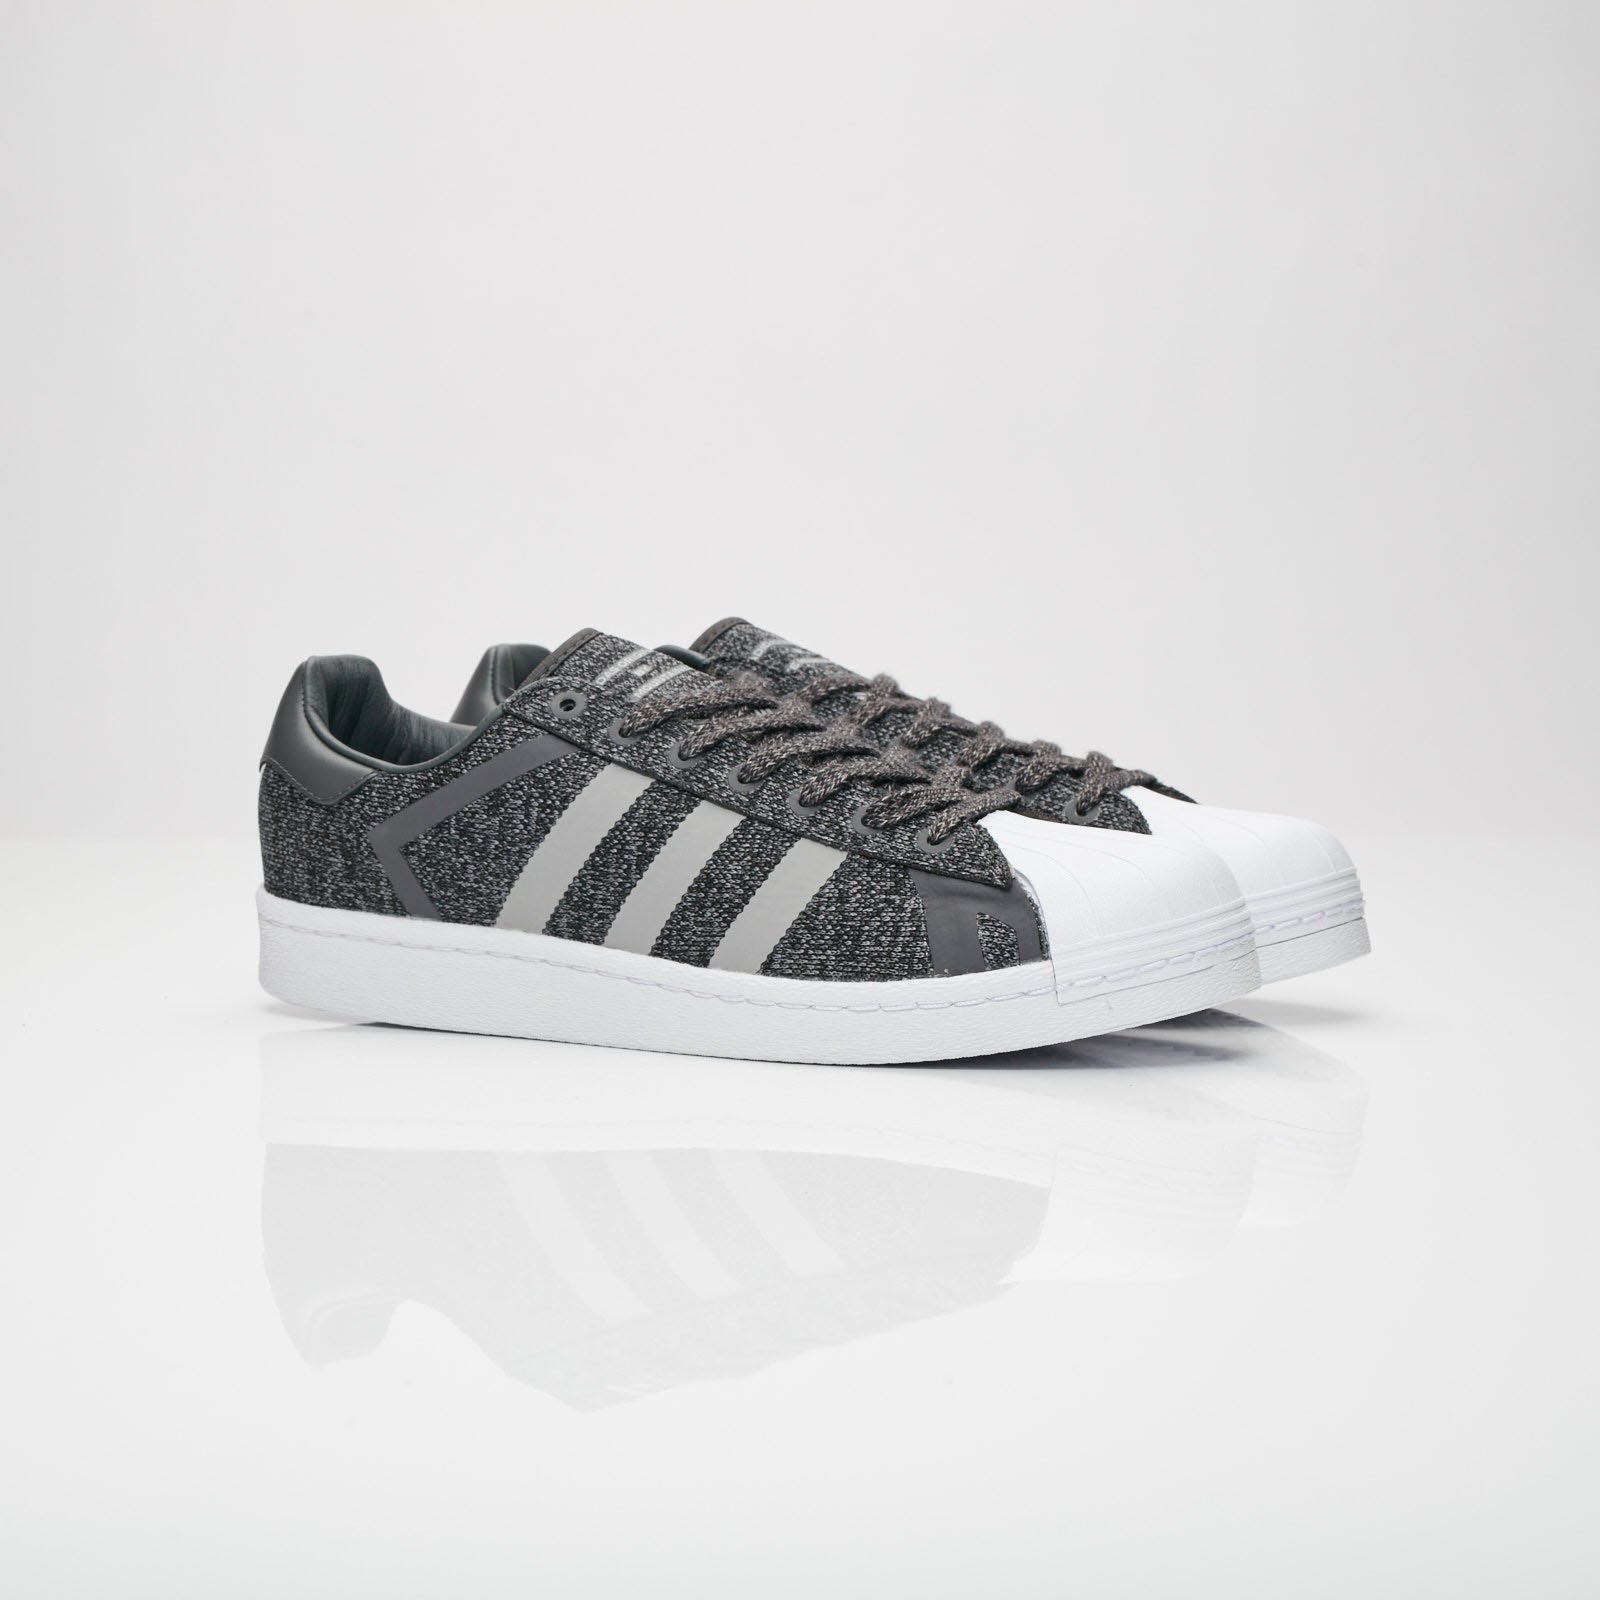 best loved def6a 10a20 adidas Superstar by White Mountaineering - Aq0351 ...